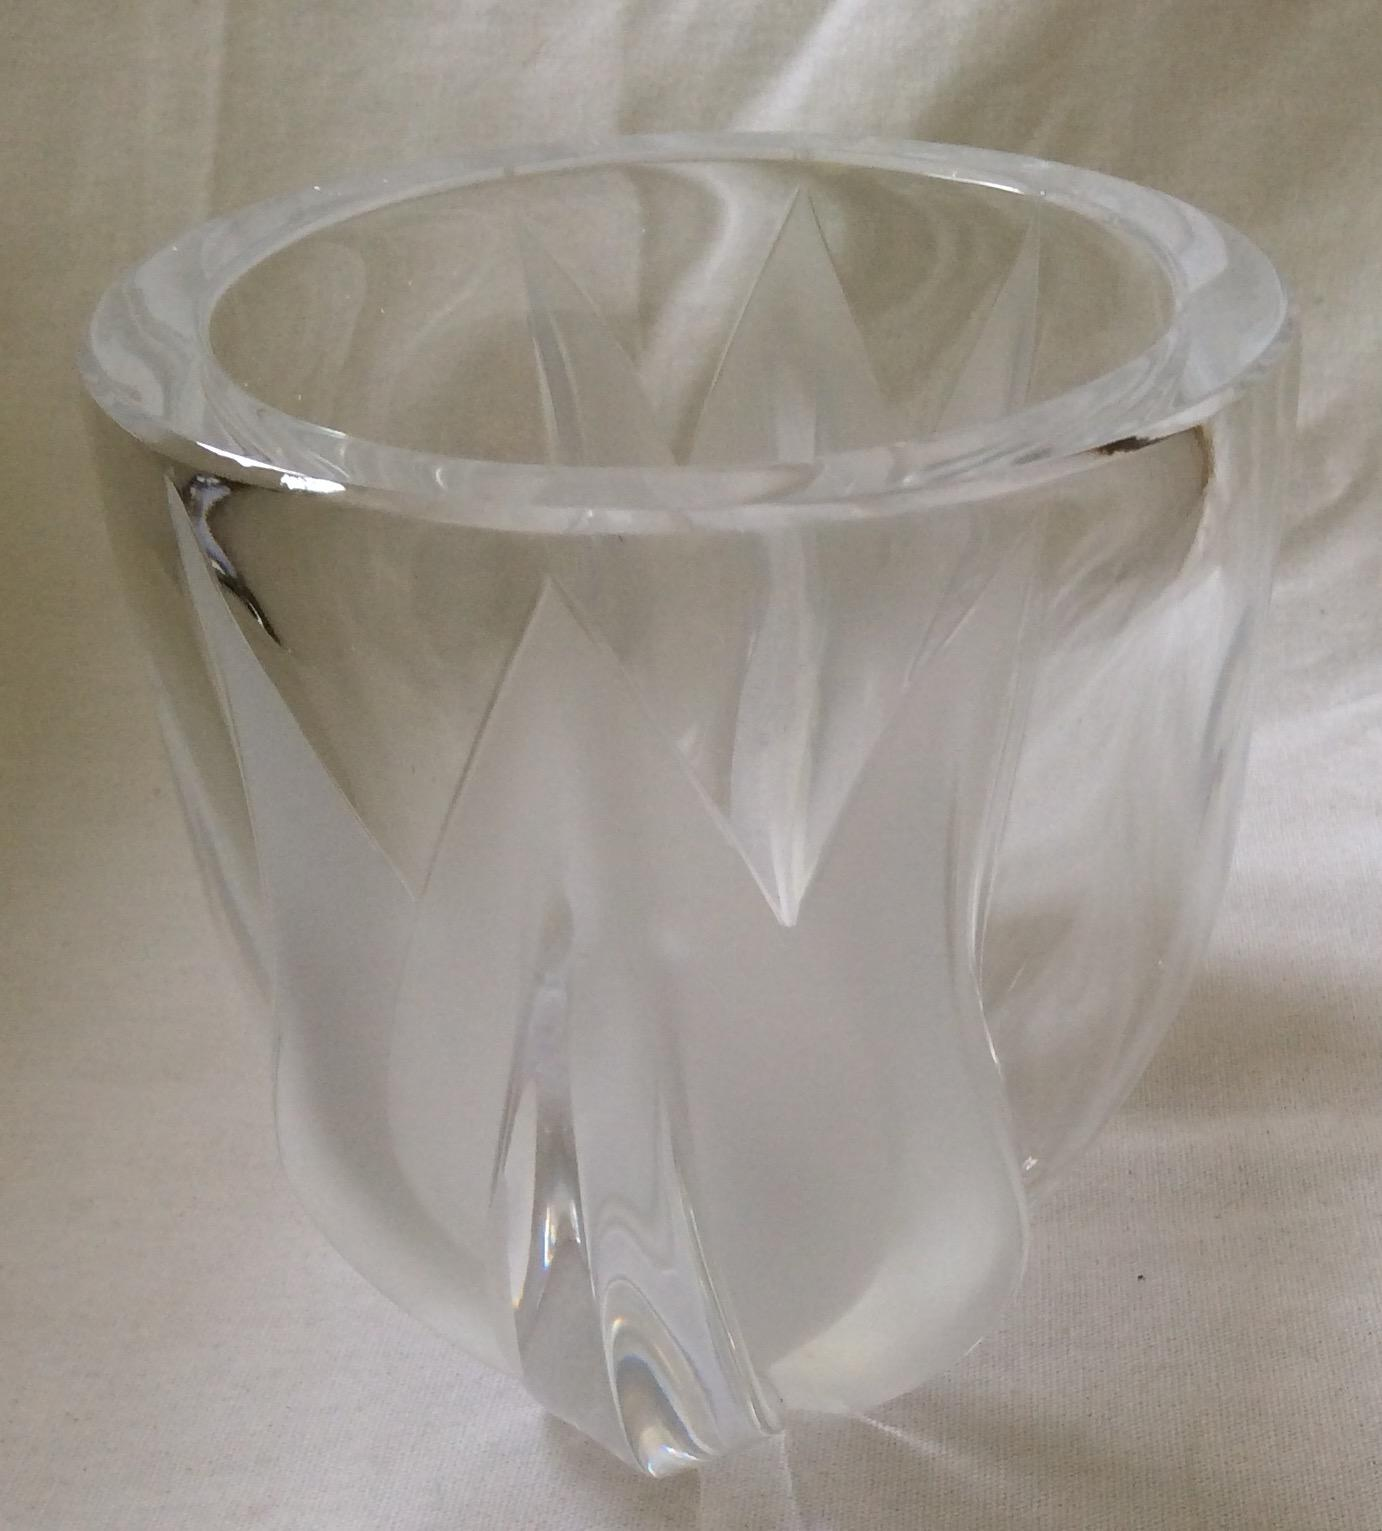 Lalique Deux Tulipes Crystal Vase Mint Condition From Archetypes On Ruby Lane